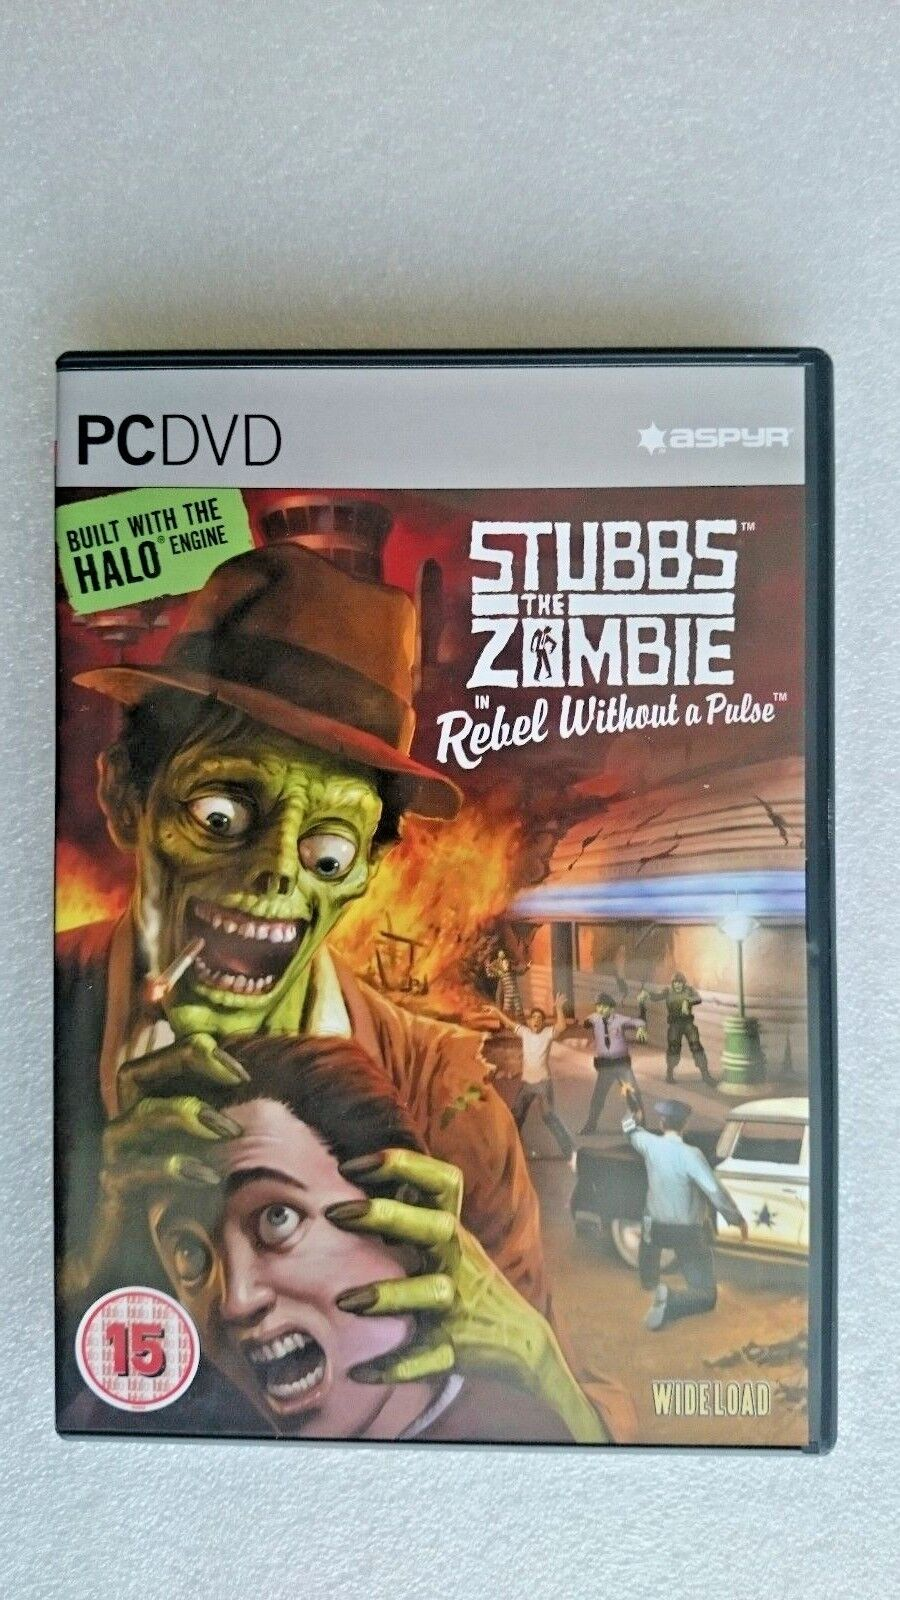 Stubbs The Zombie - A Rebel Without a Pulse (PC: Mac, 2005)